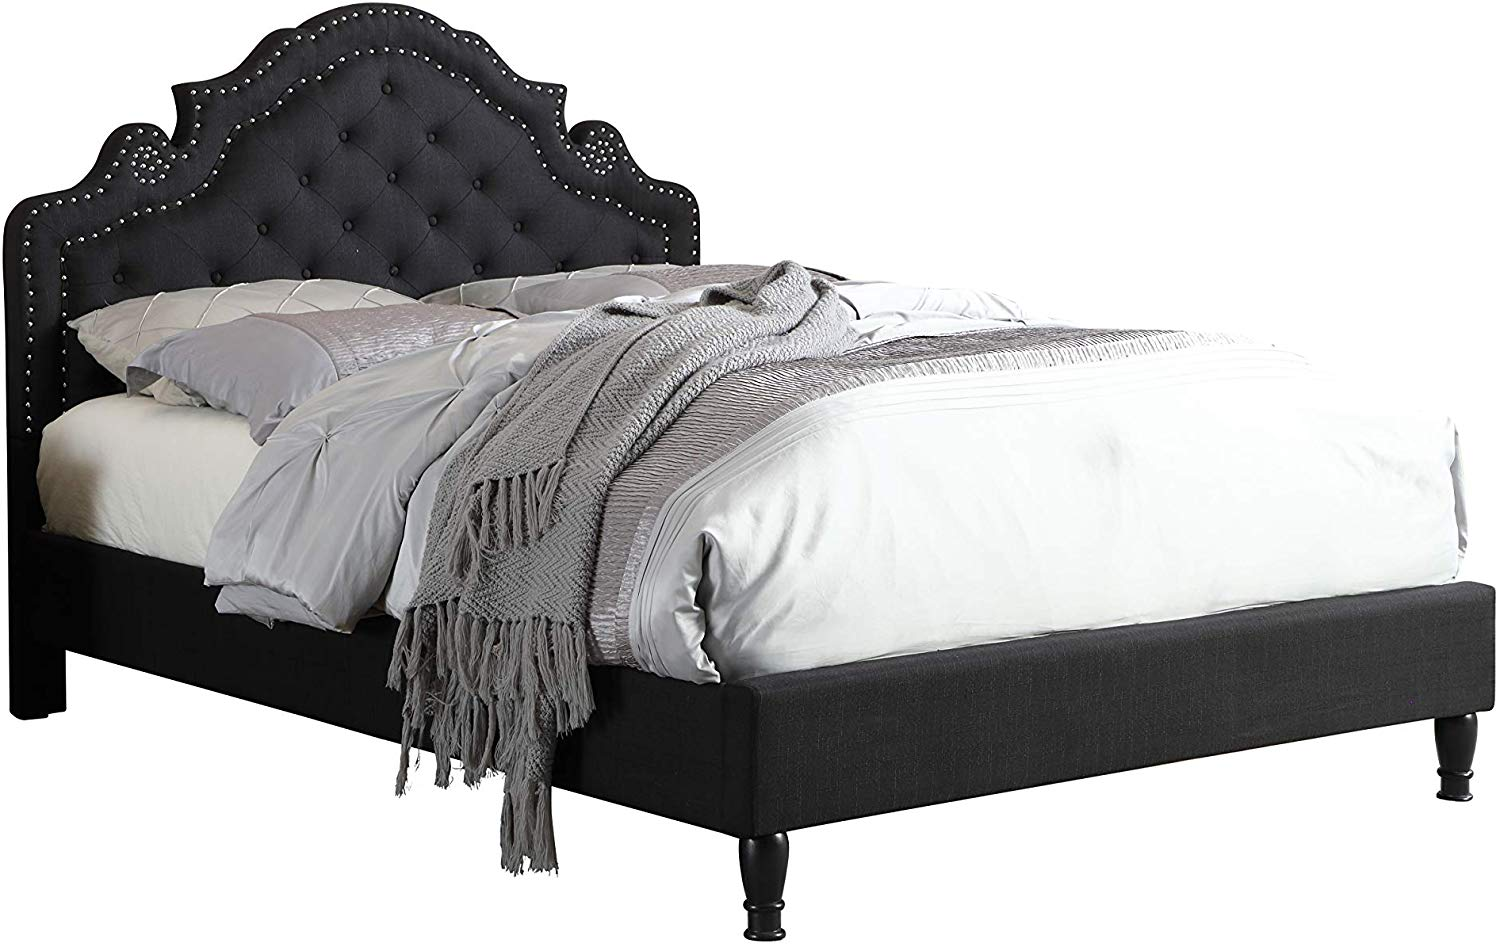 Gothic Furniture 7 Top Product Reviews